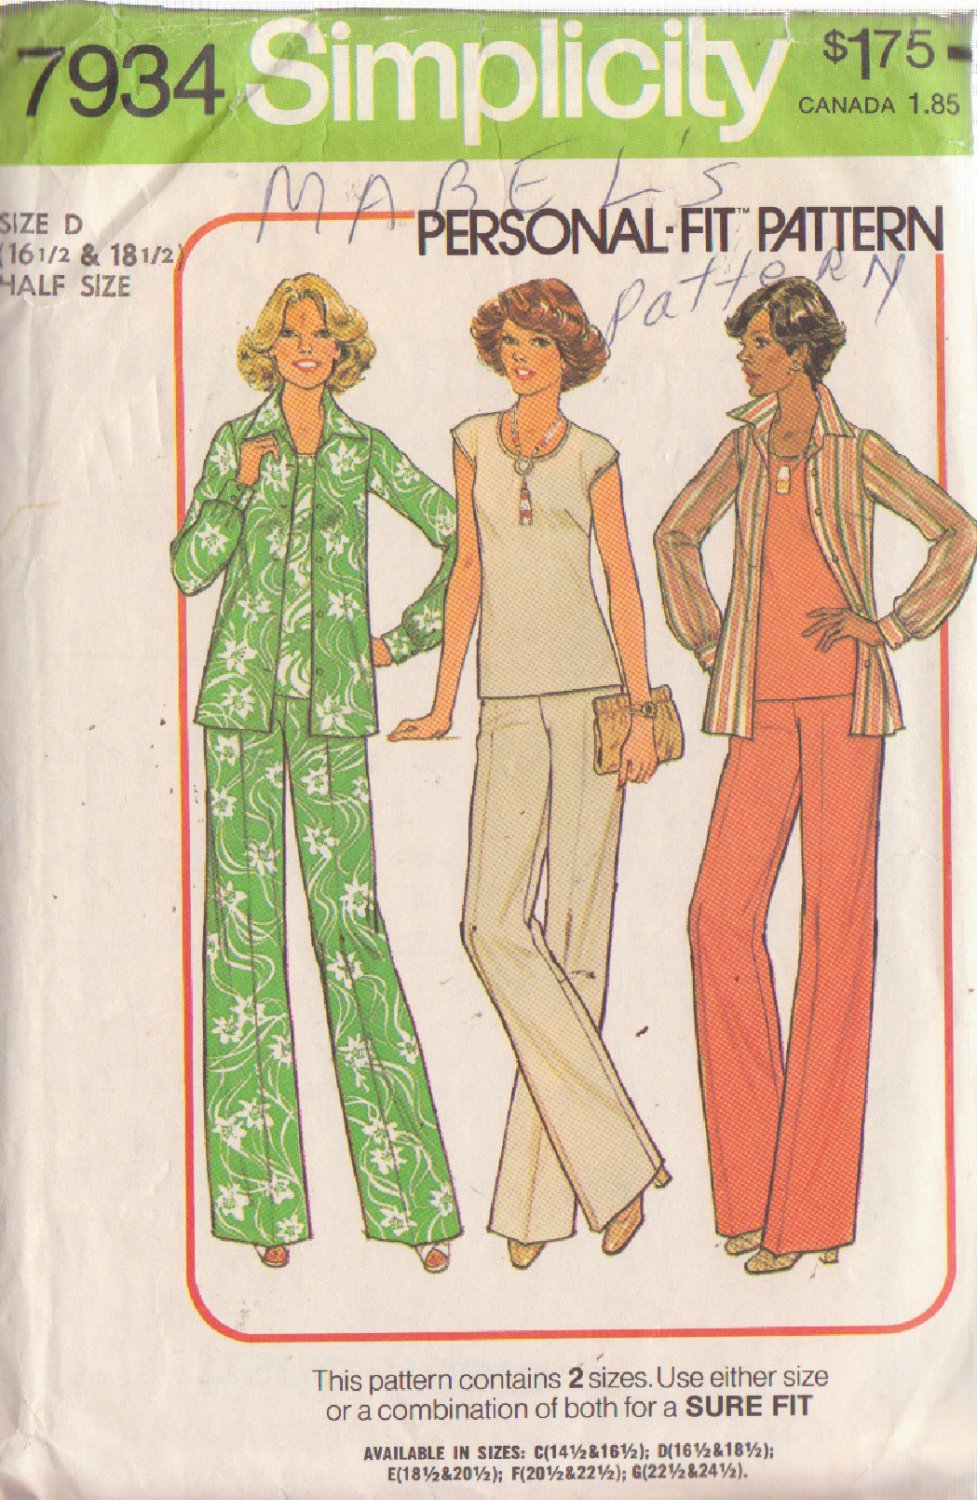 SIMPLICITY PATTERN 7934 MISSES' PANTS, TOP, SHIRT SIZES 16 1/2 - 18 1/2